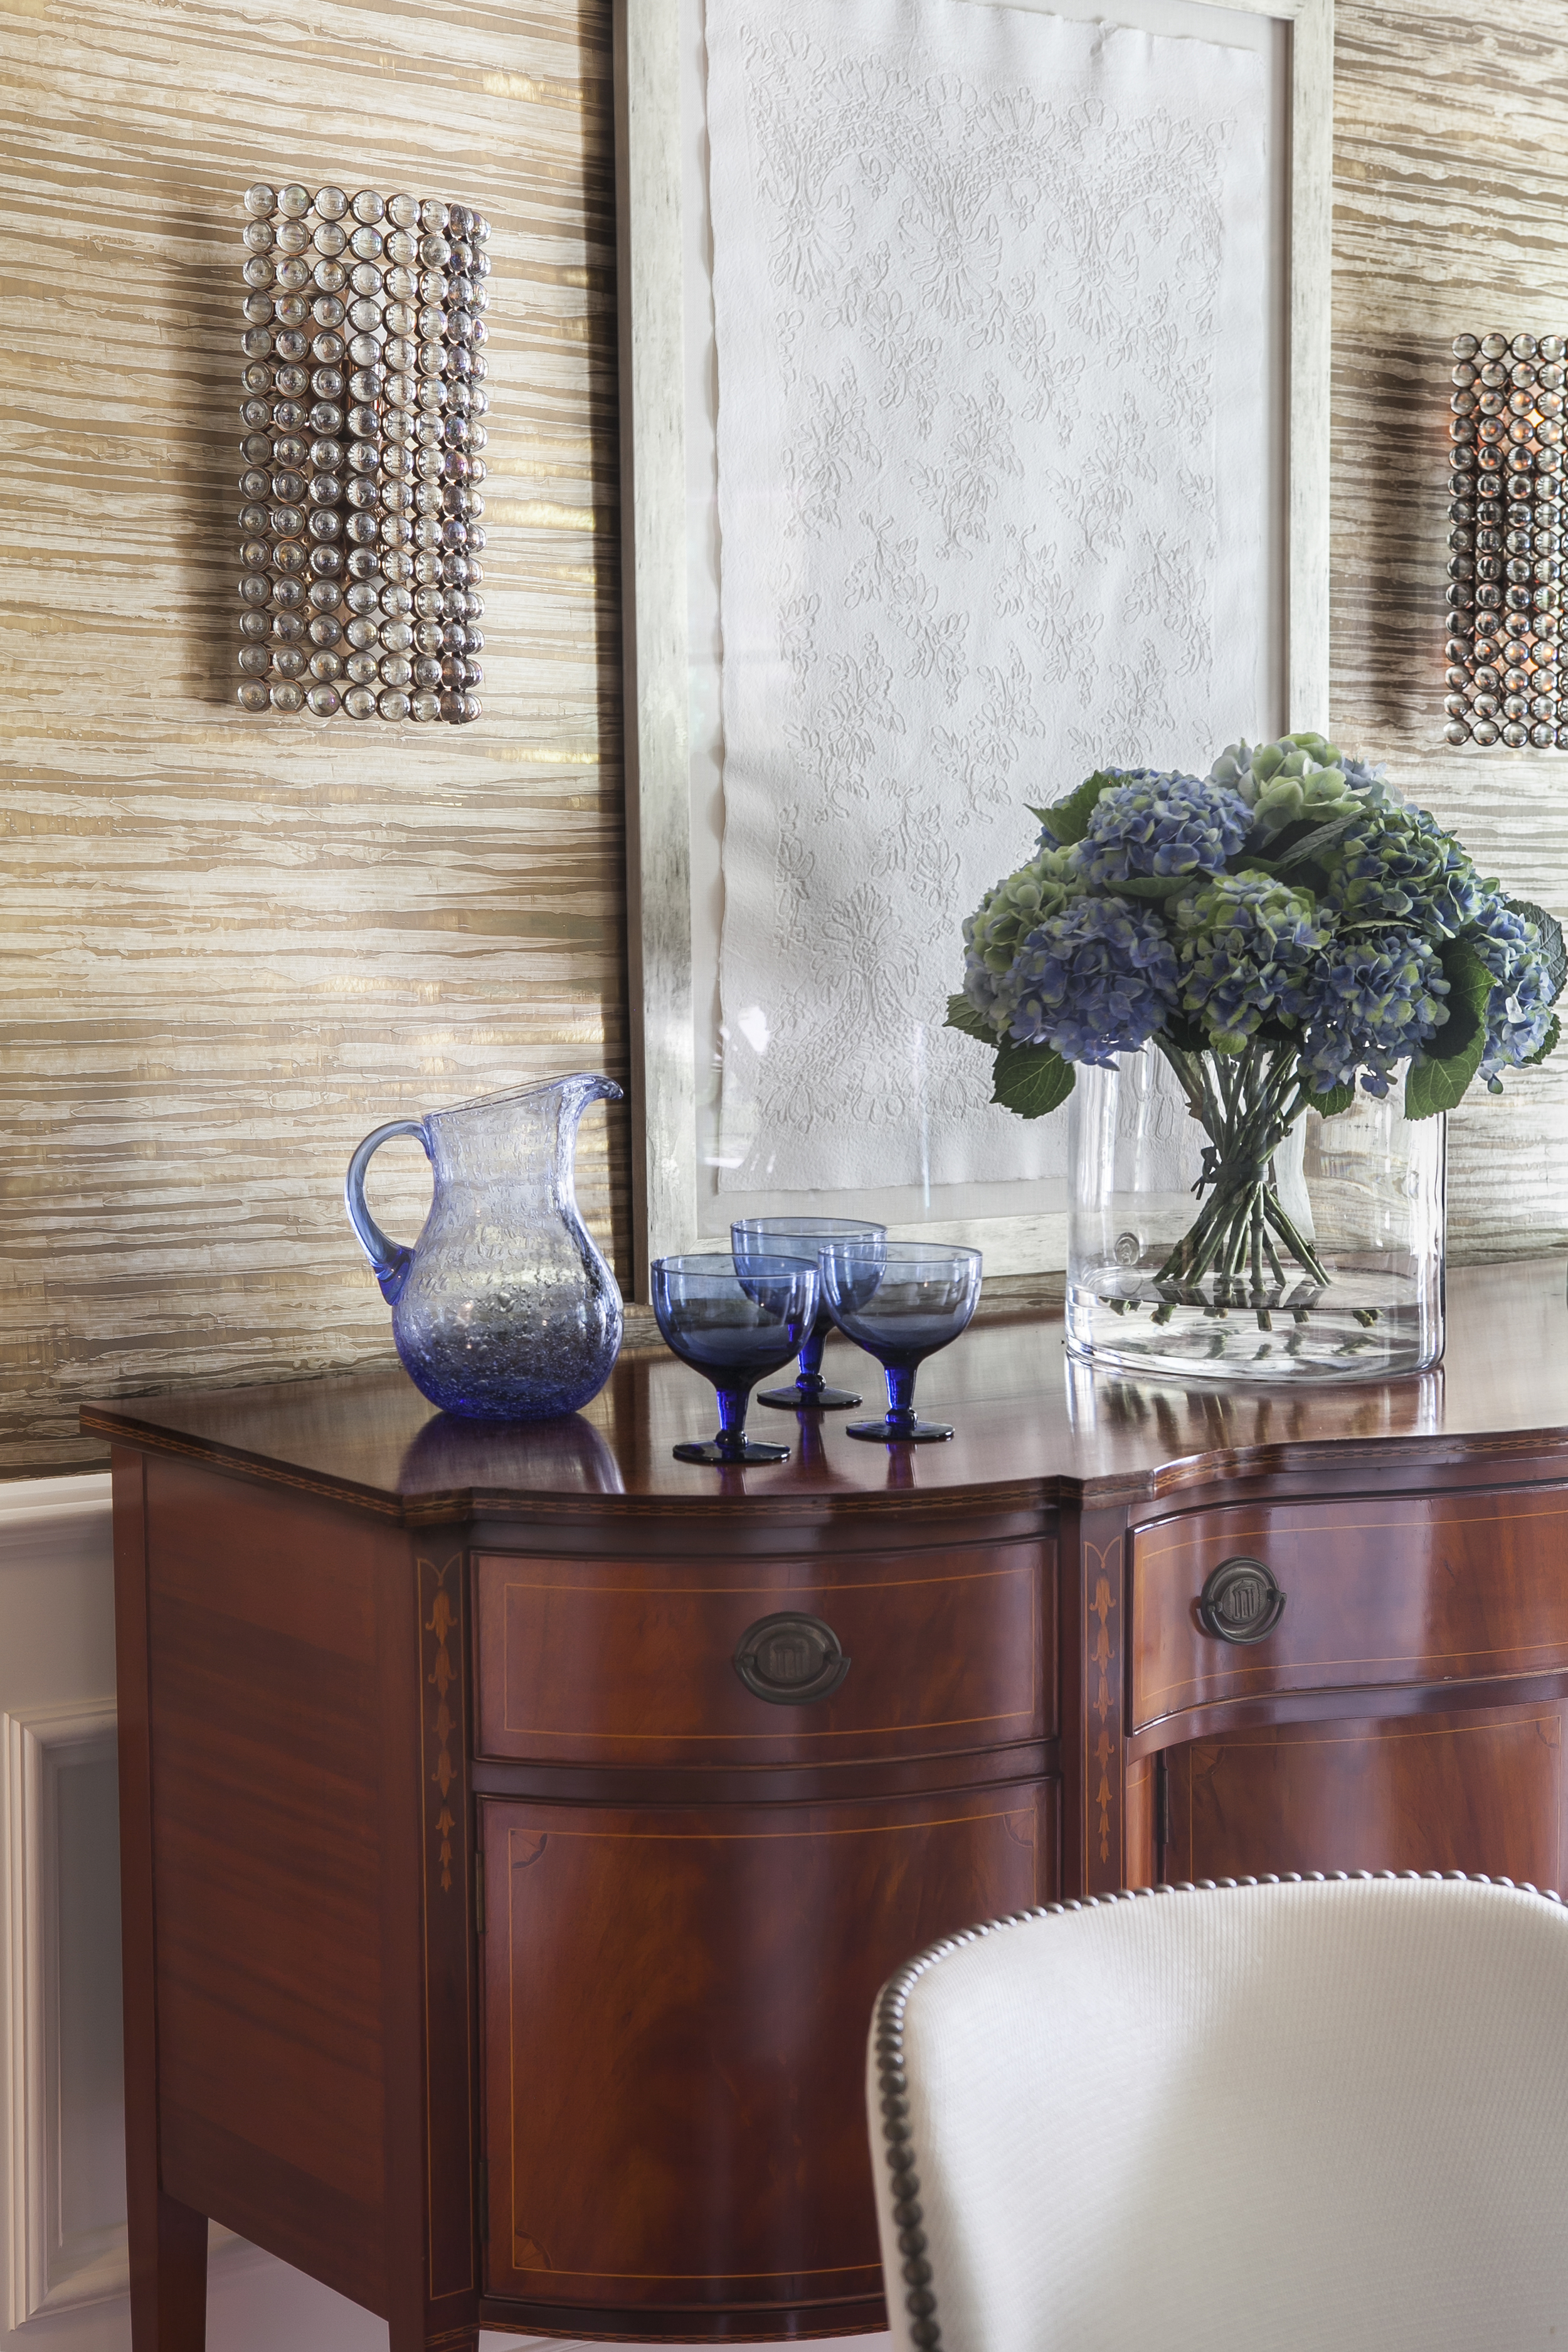 Armonk, NY, Finelines Interiors - Artwork by Wendy Shalen